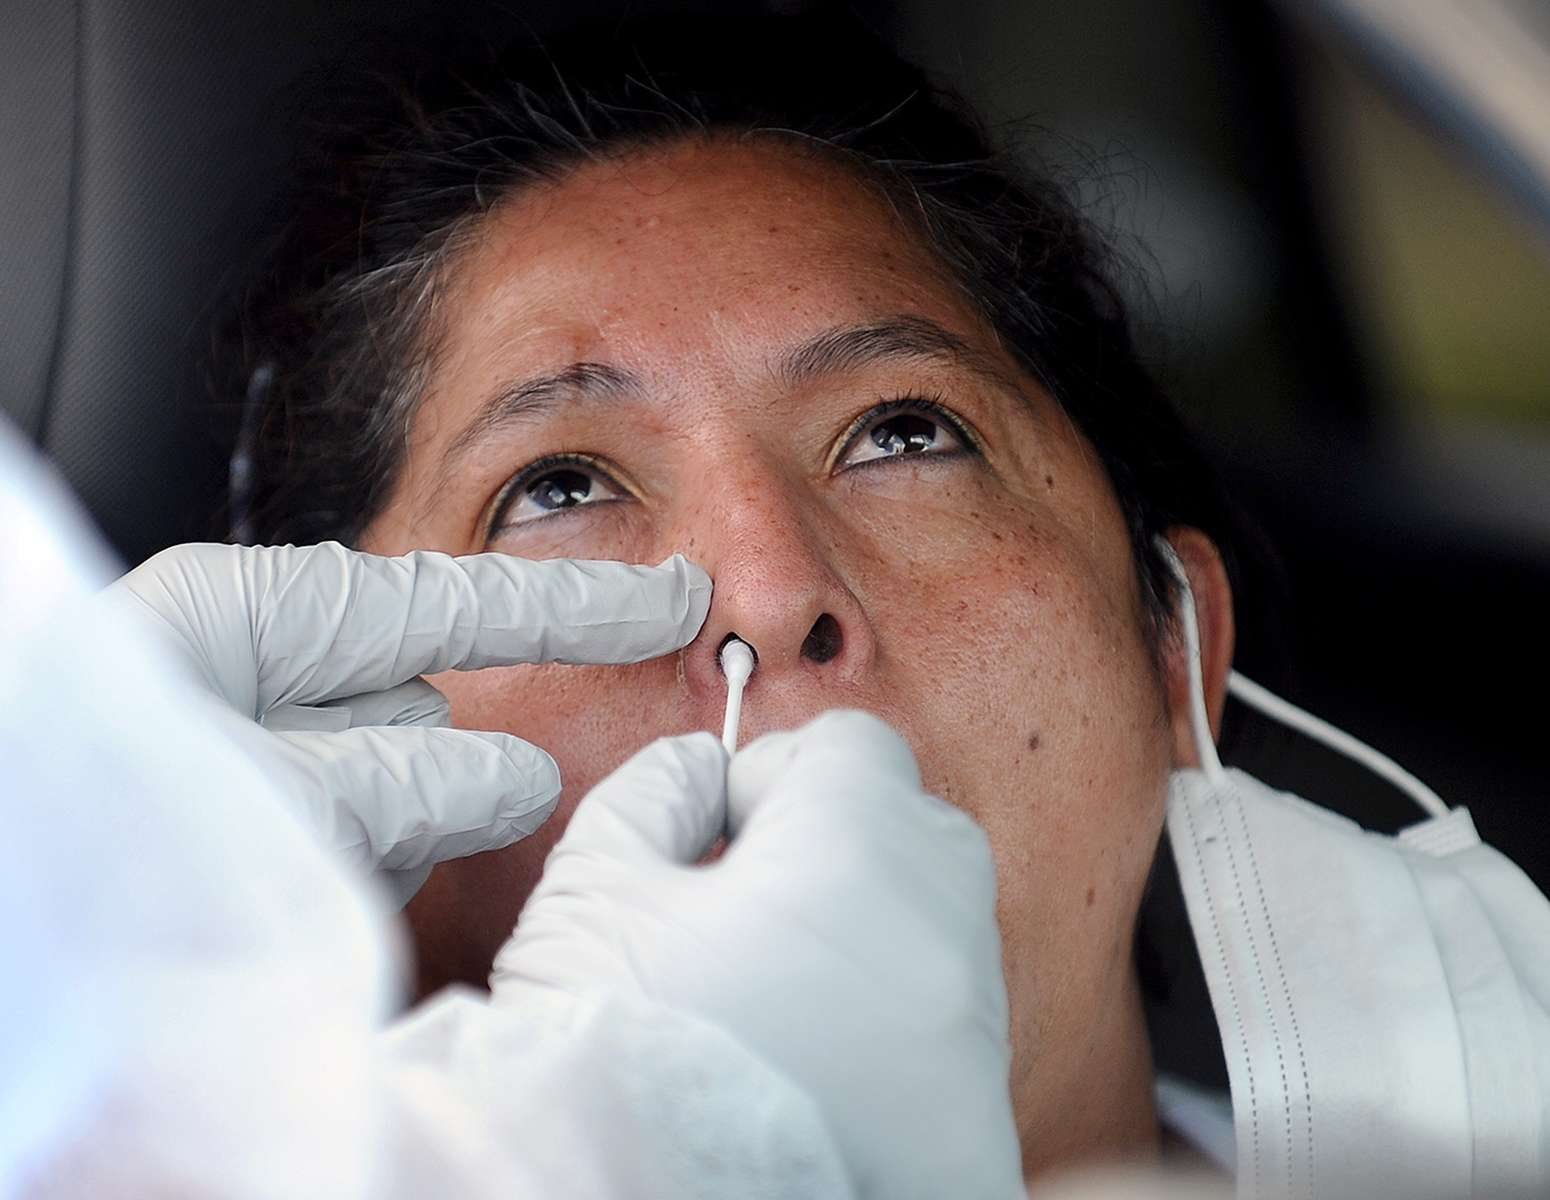 8/5/20-- FRAMINGHAM--  Sara Salazar, of Framingham,  receives a free, state sponsored COVID-19 nasal swab test from her car in the parking lot of the Joseph P. Keefe Technical High School Wednesday.  Hundreds of cars were lined up for the tests, which began at 2 p.m.  The first car in line arrived at 9 a.m. Tests hours are Monday, Wednesday and Friday, 2-6 p.m. and Tuesday and Thursdays, 8 a.m. to 12.p.m. through August 14. [Daily News and Wicked Local Staff Photo/Art Illman]